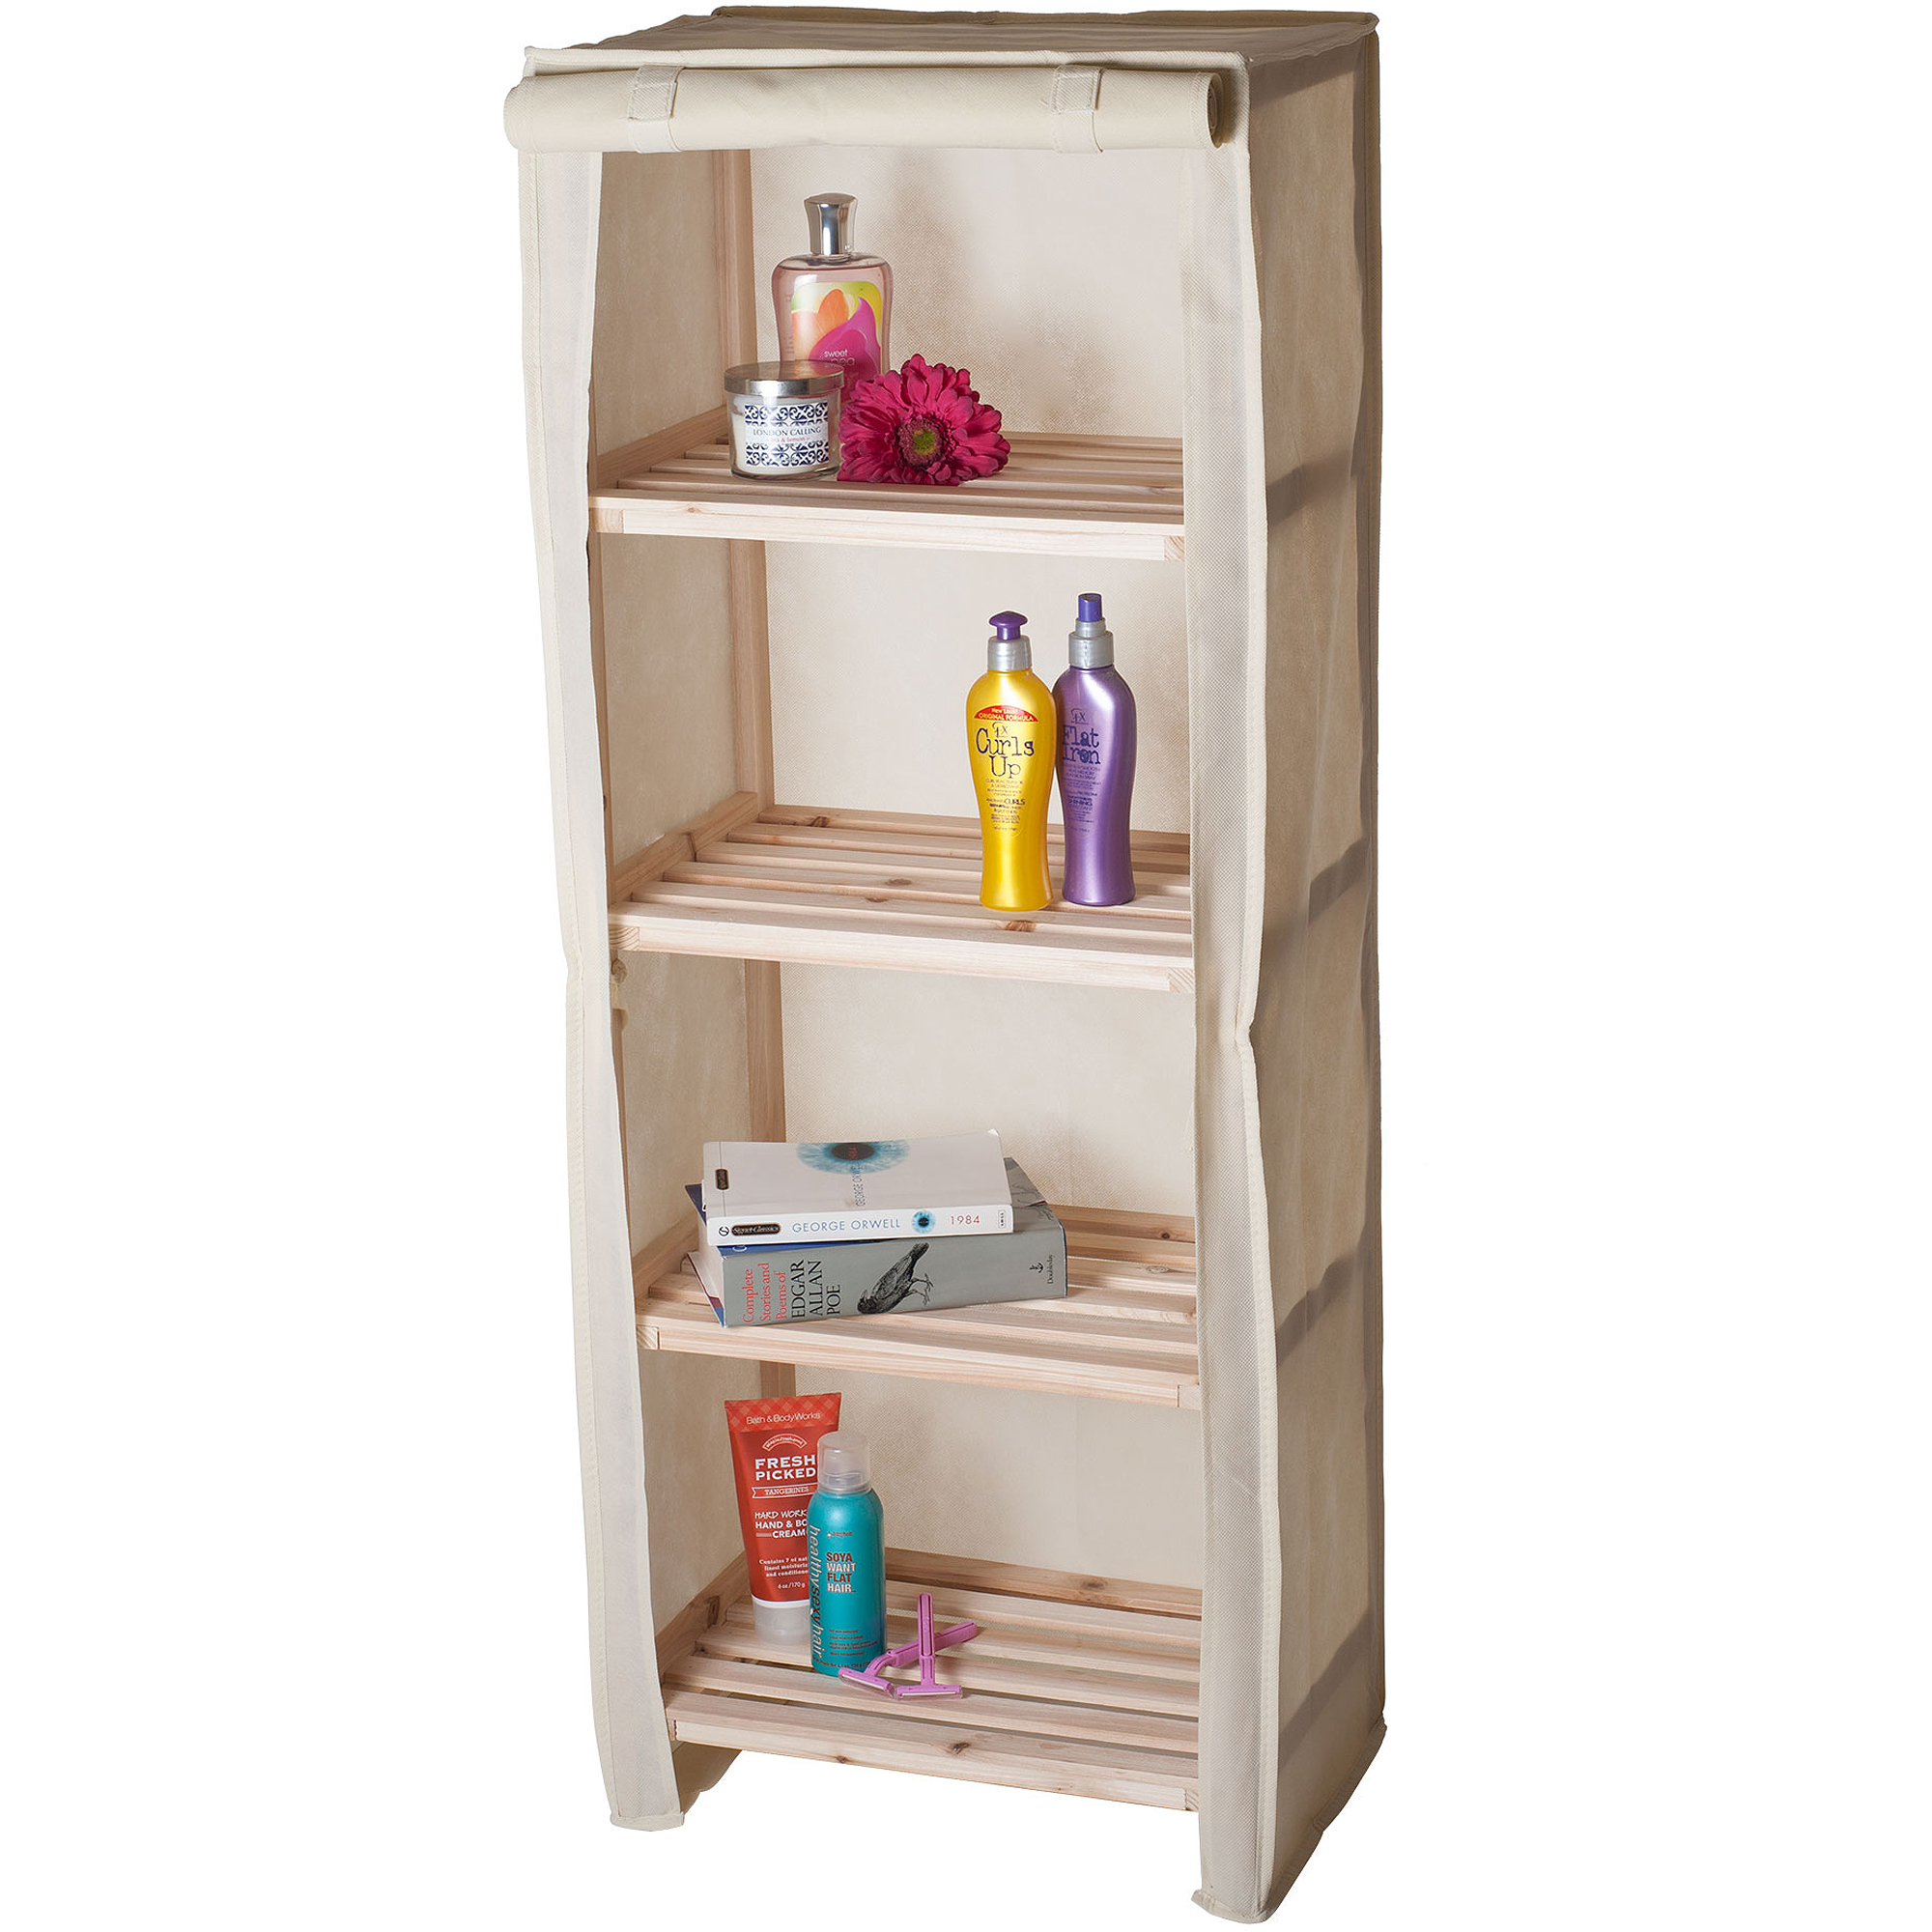 Lavish Home 4-Tier Wood Storage Shelving Rack with Removable Cover